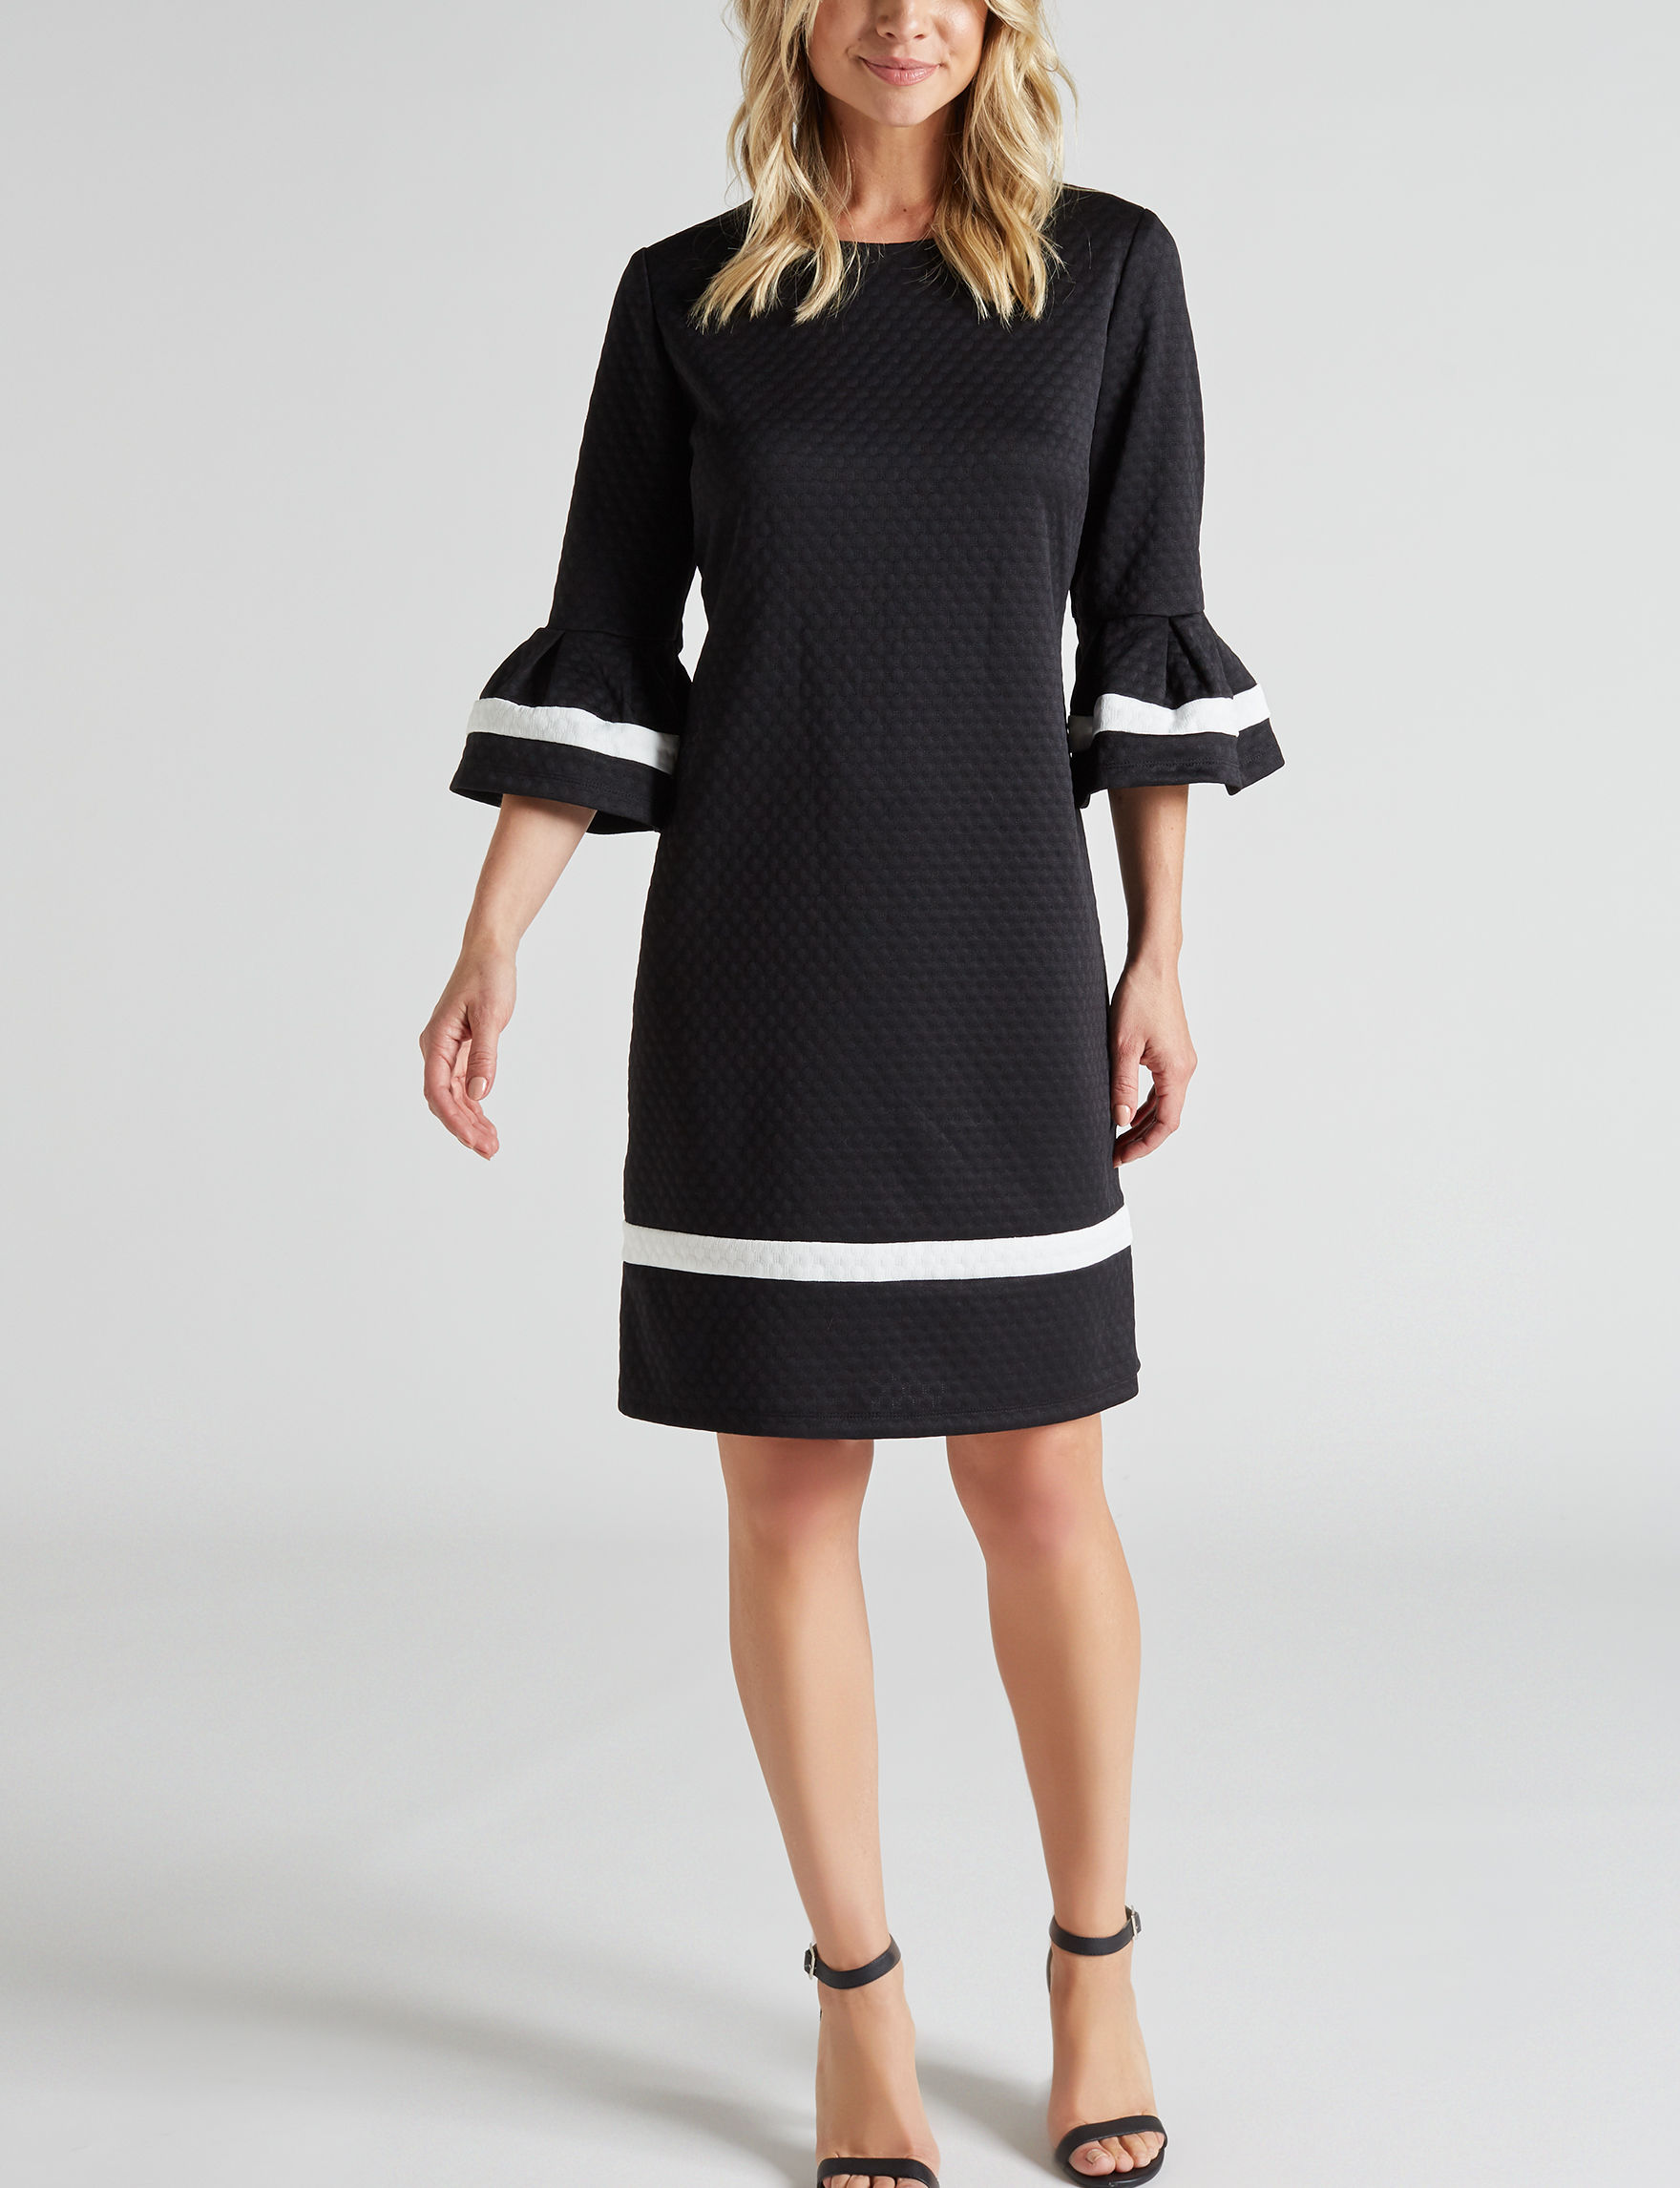 Ronni Nicole Black Everyday & Casual A-line Dresses Fit & Flare Dresses